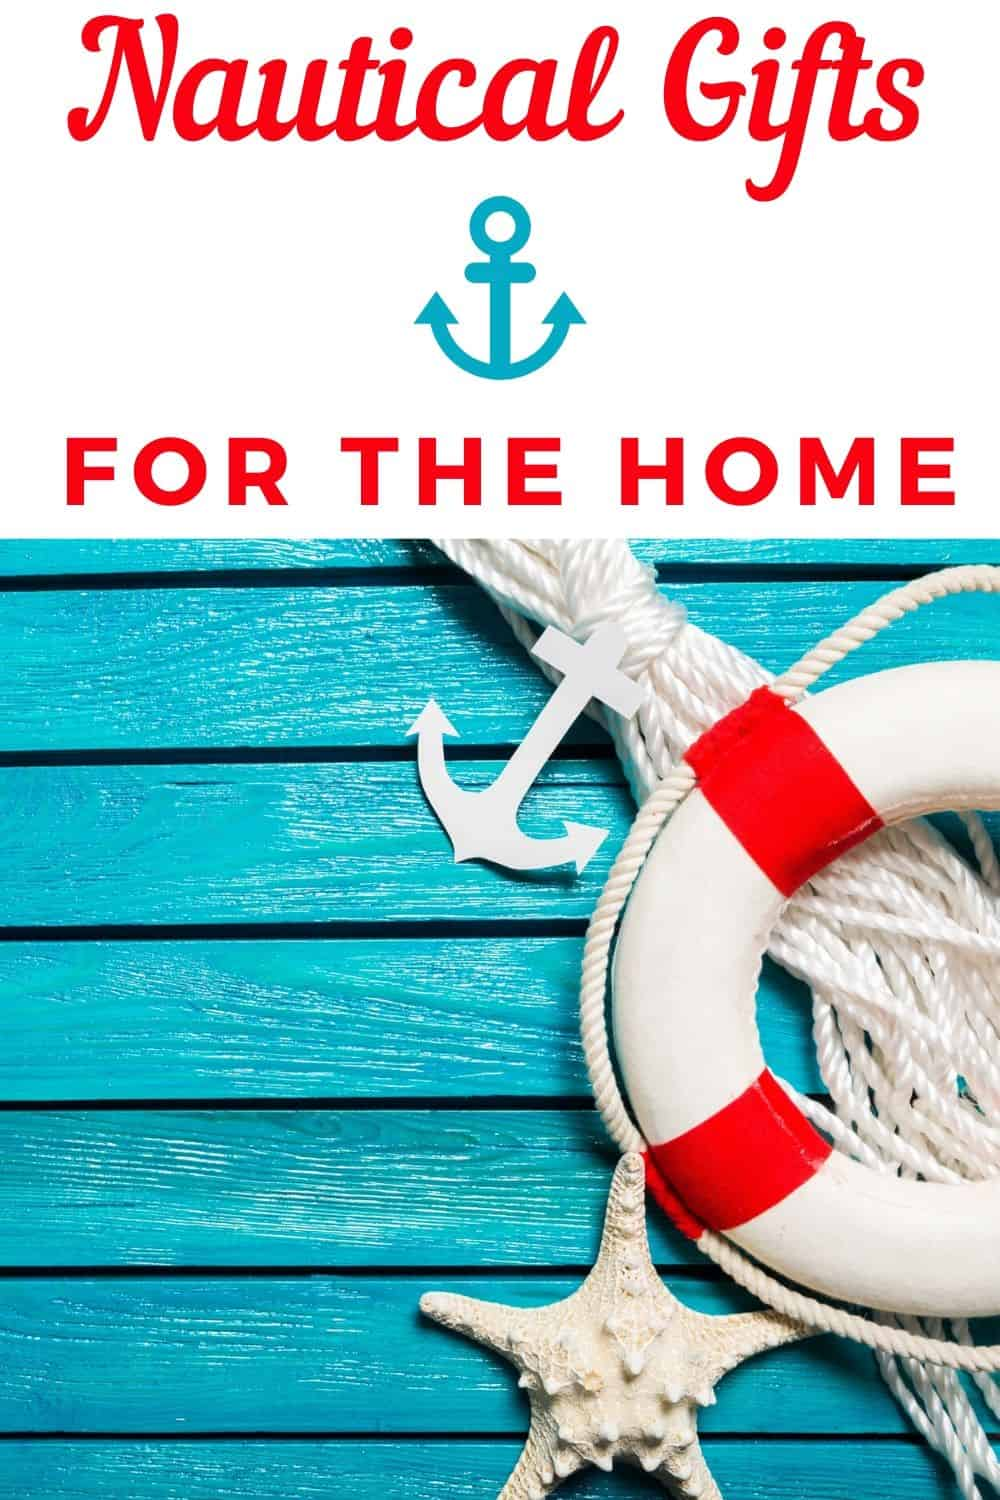 Nautical Gifts for The Home - Nautical Themed Decor Gift Ideas